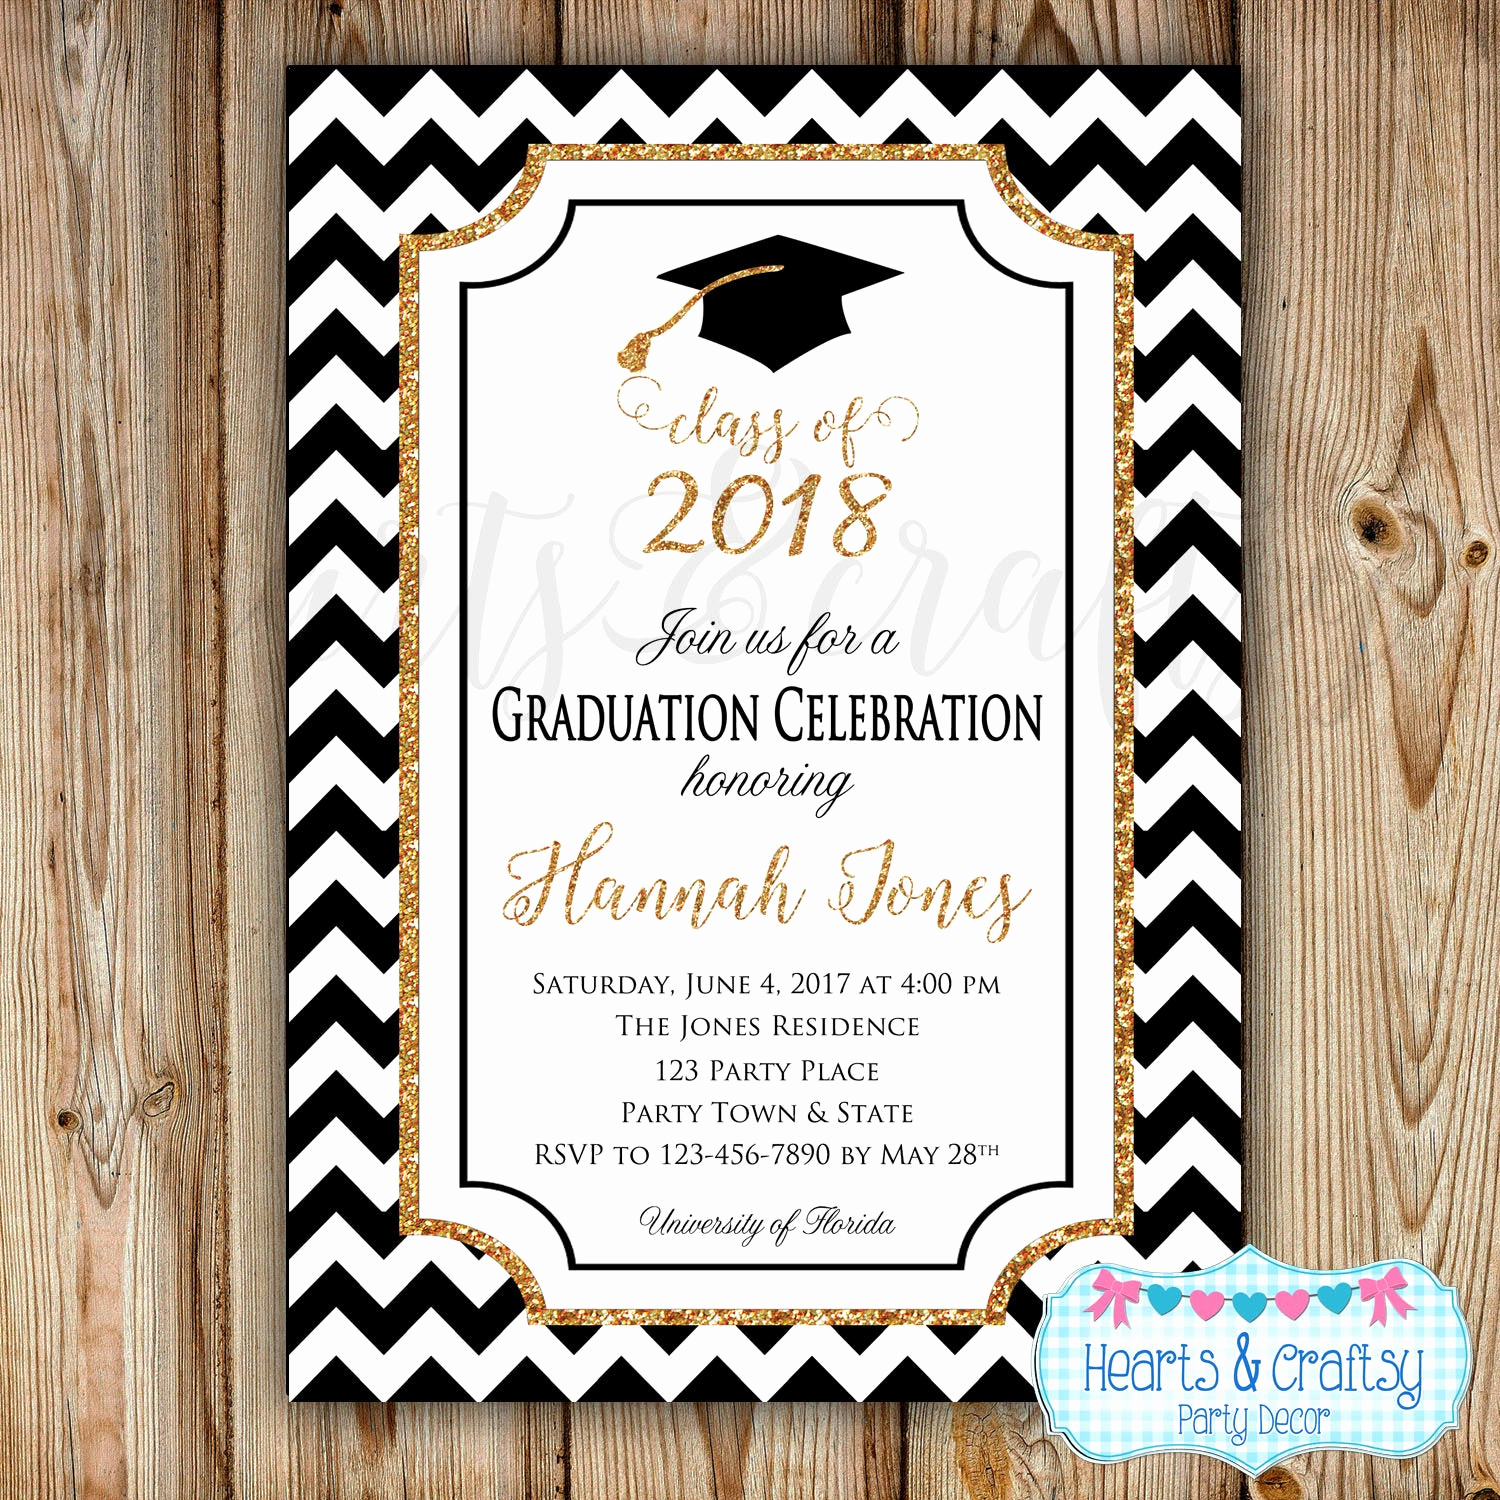 College Grad Party Invitation New Graduation Party Invitation College Graduation Invitation